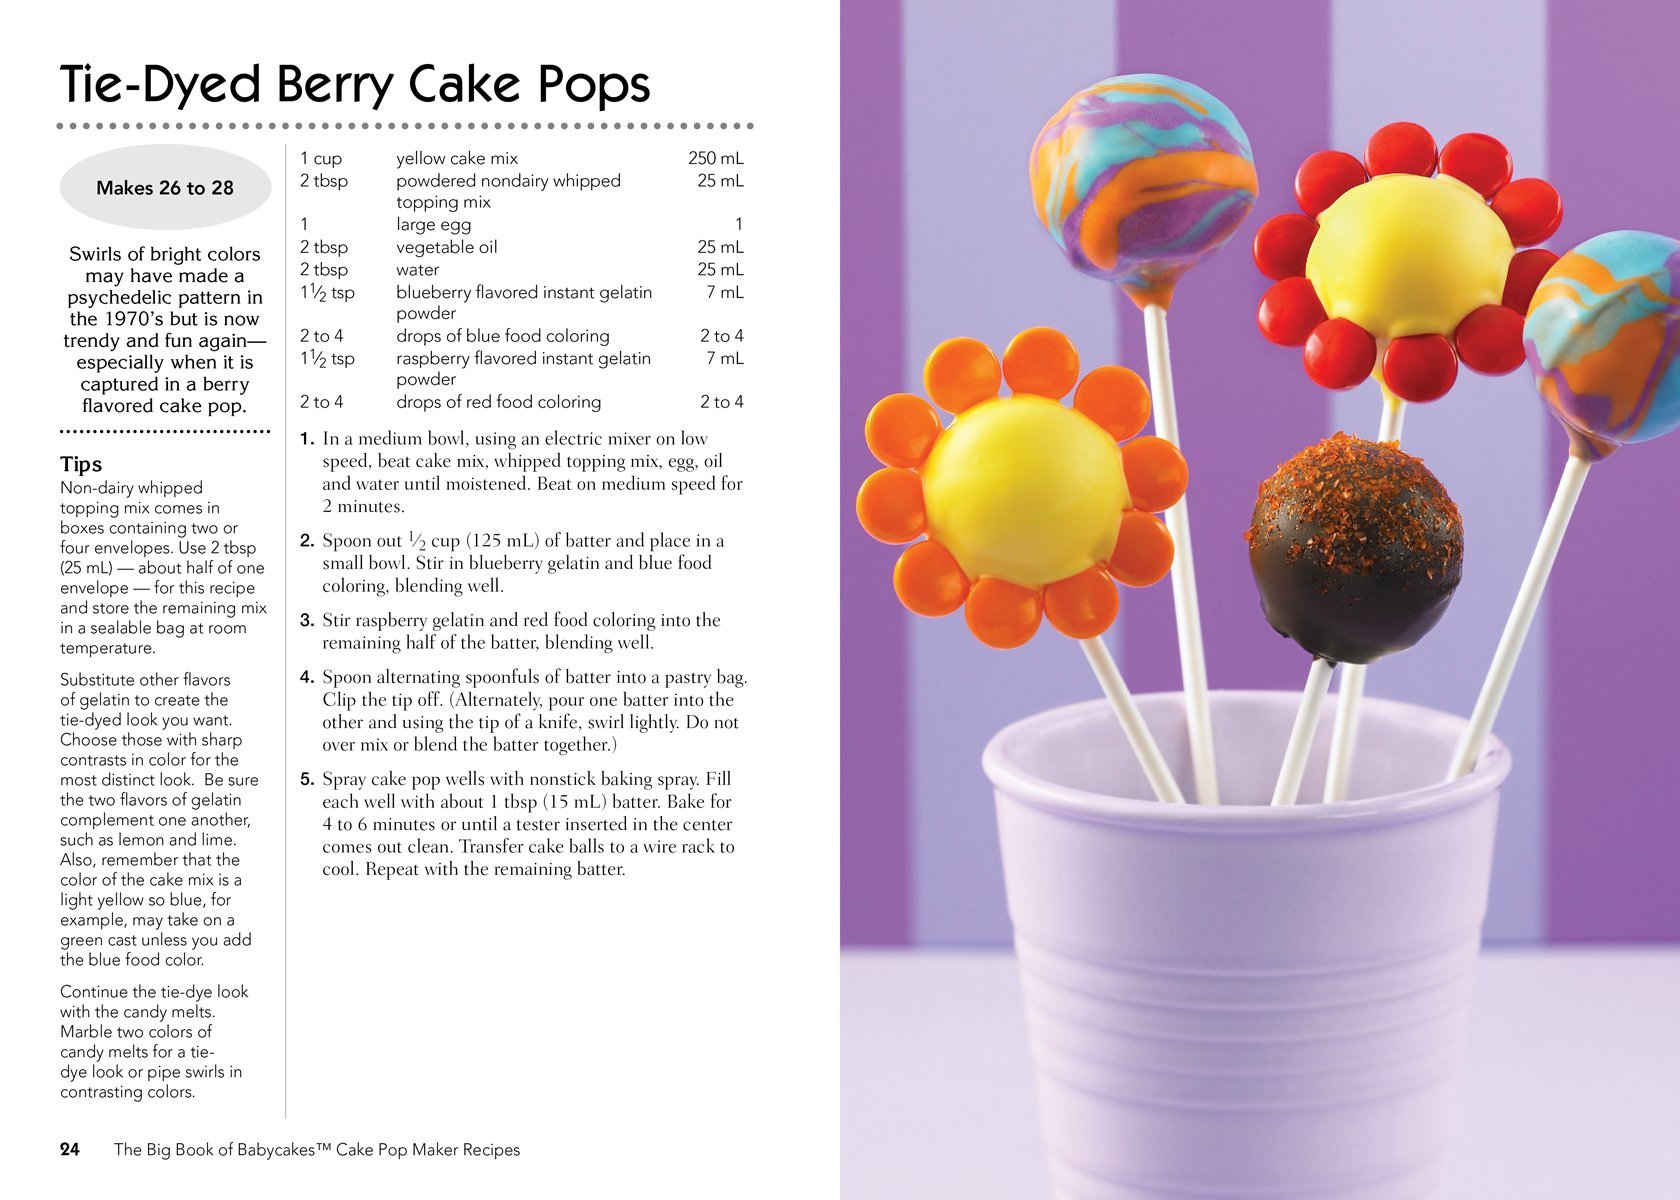 The Big Book of Babycakes Cake Pop Maker Recipes: Homemade Bite-Sized Fun!:  Kathy Moore, Roxanne Wyss: 9780778804185: Amazon.com: Books